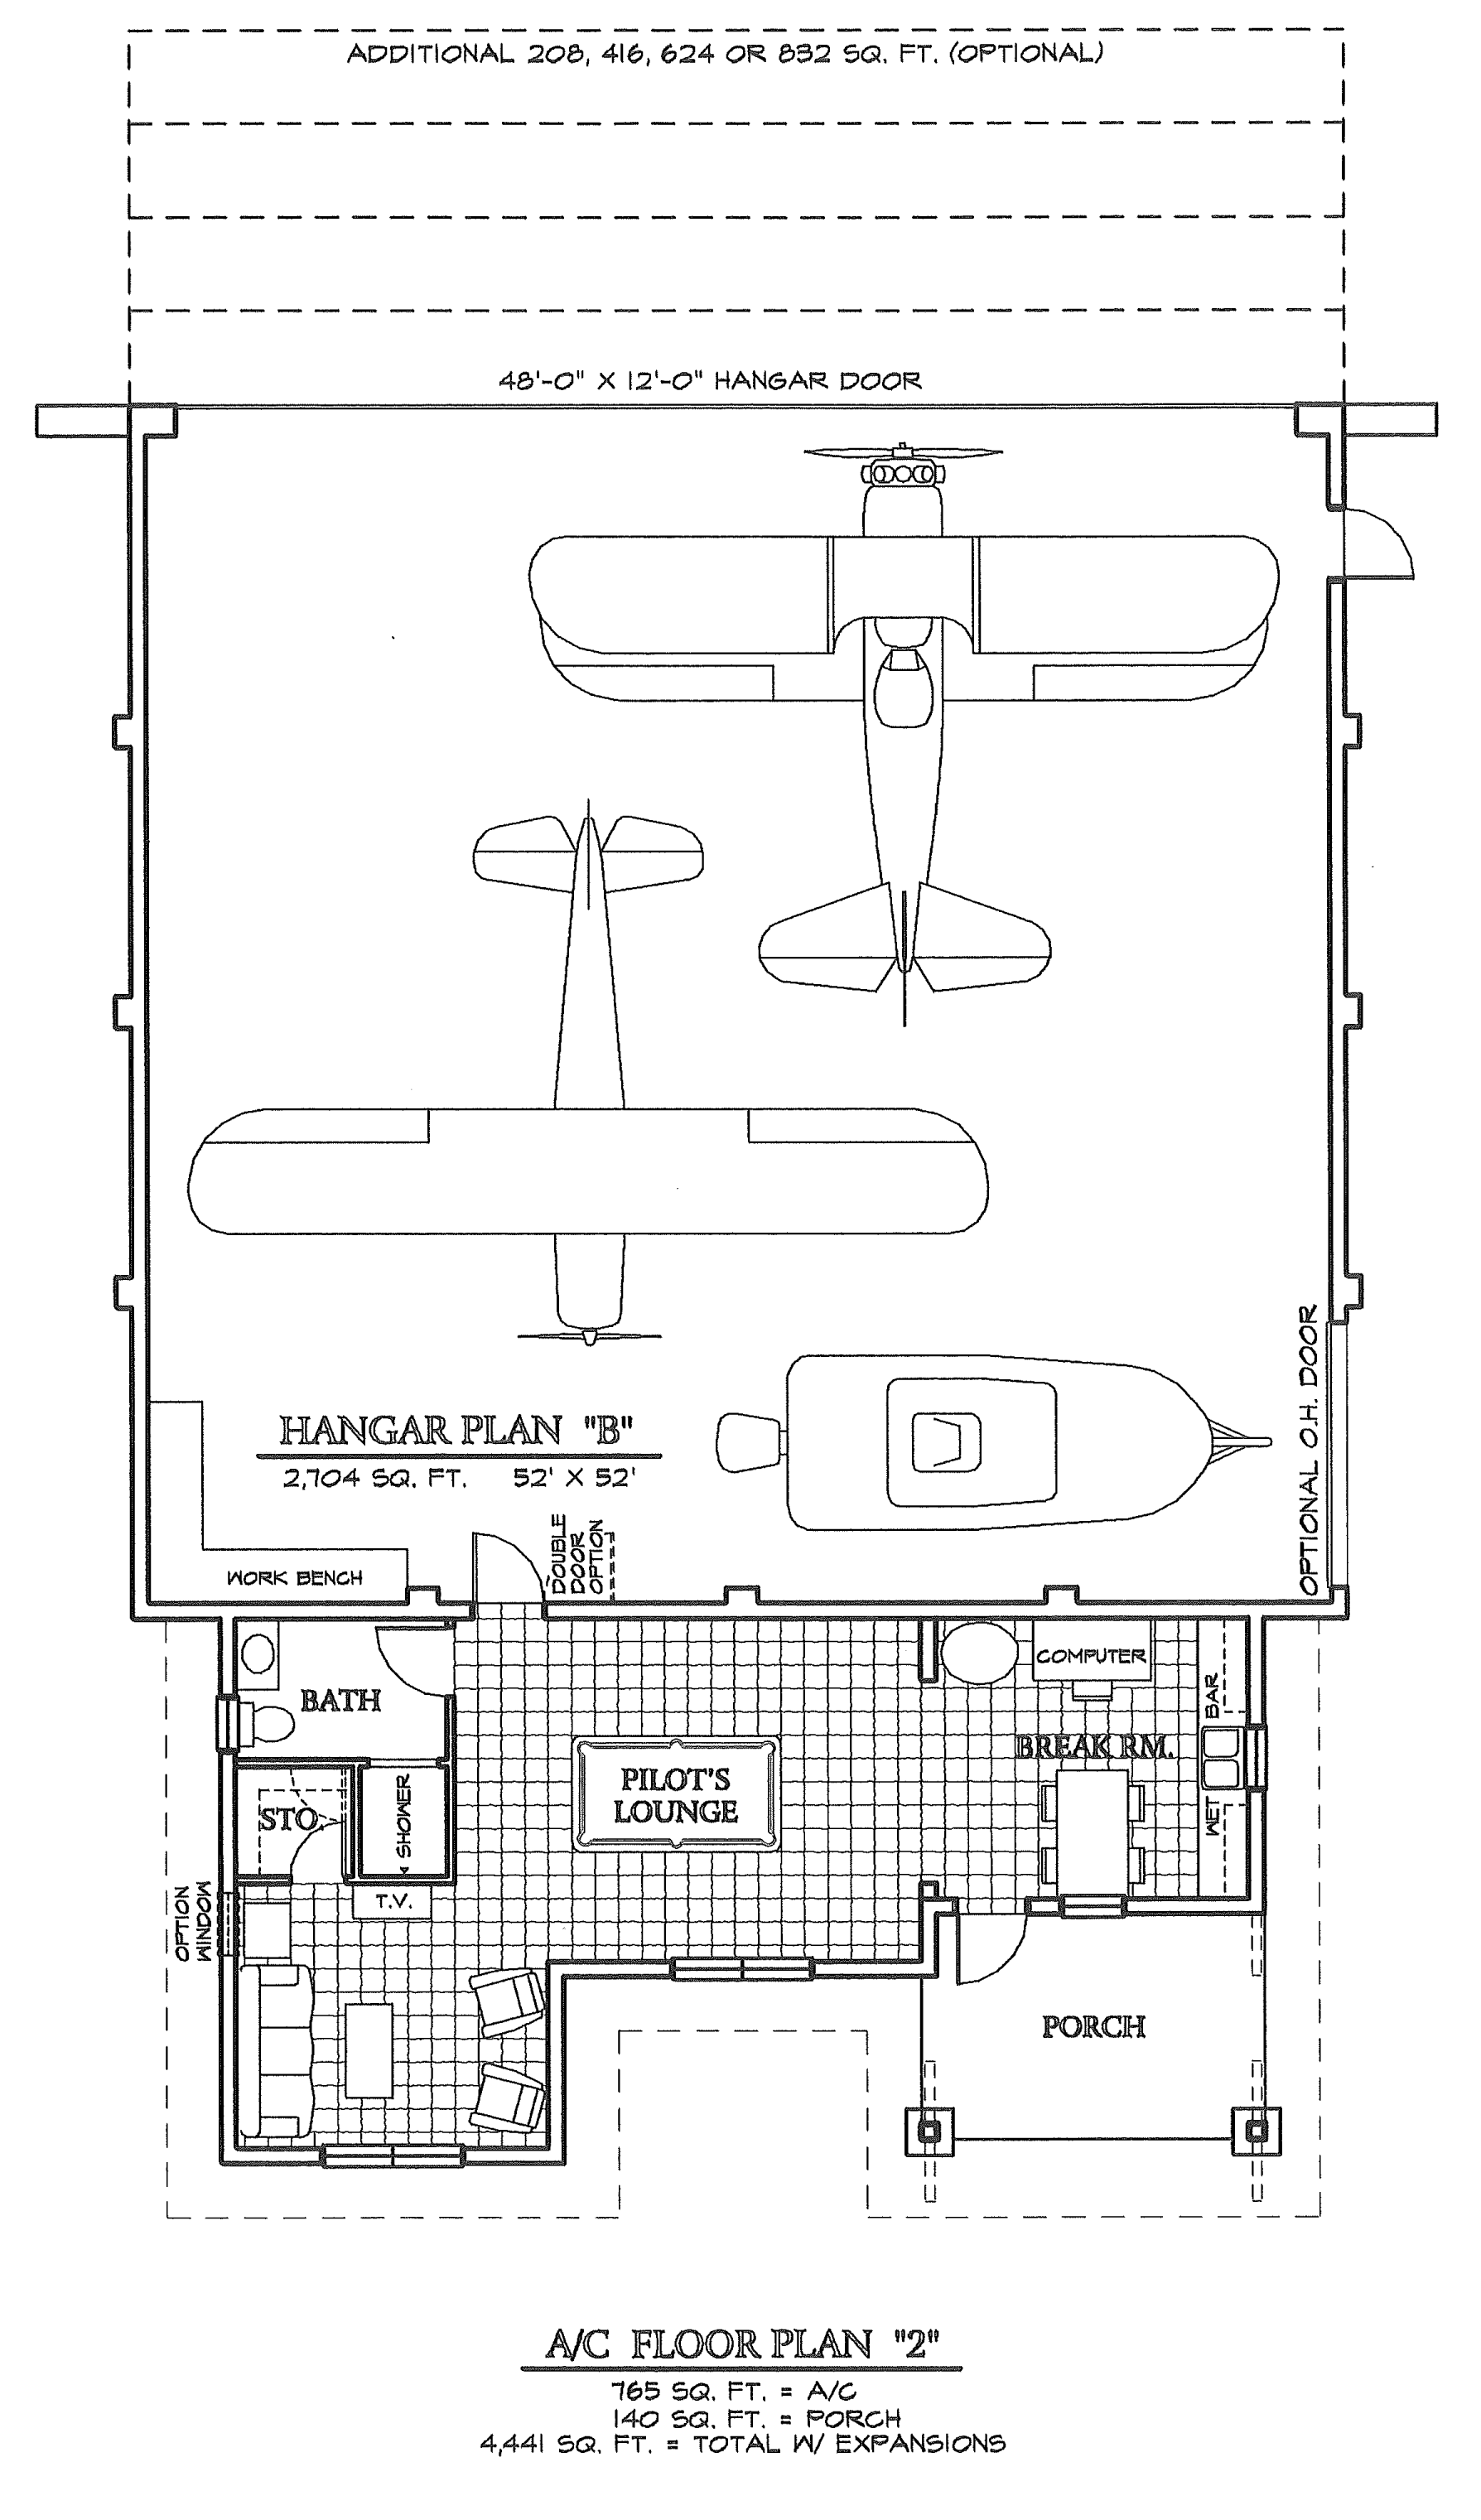 Airplane hangar blueprints pictures to pin on pinterest for Hangar home designs